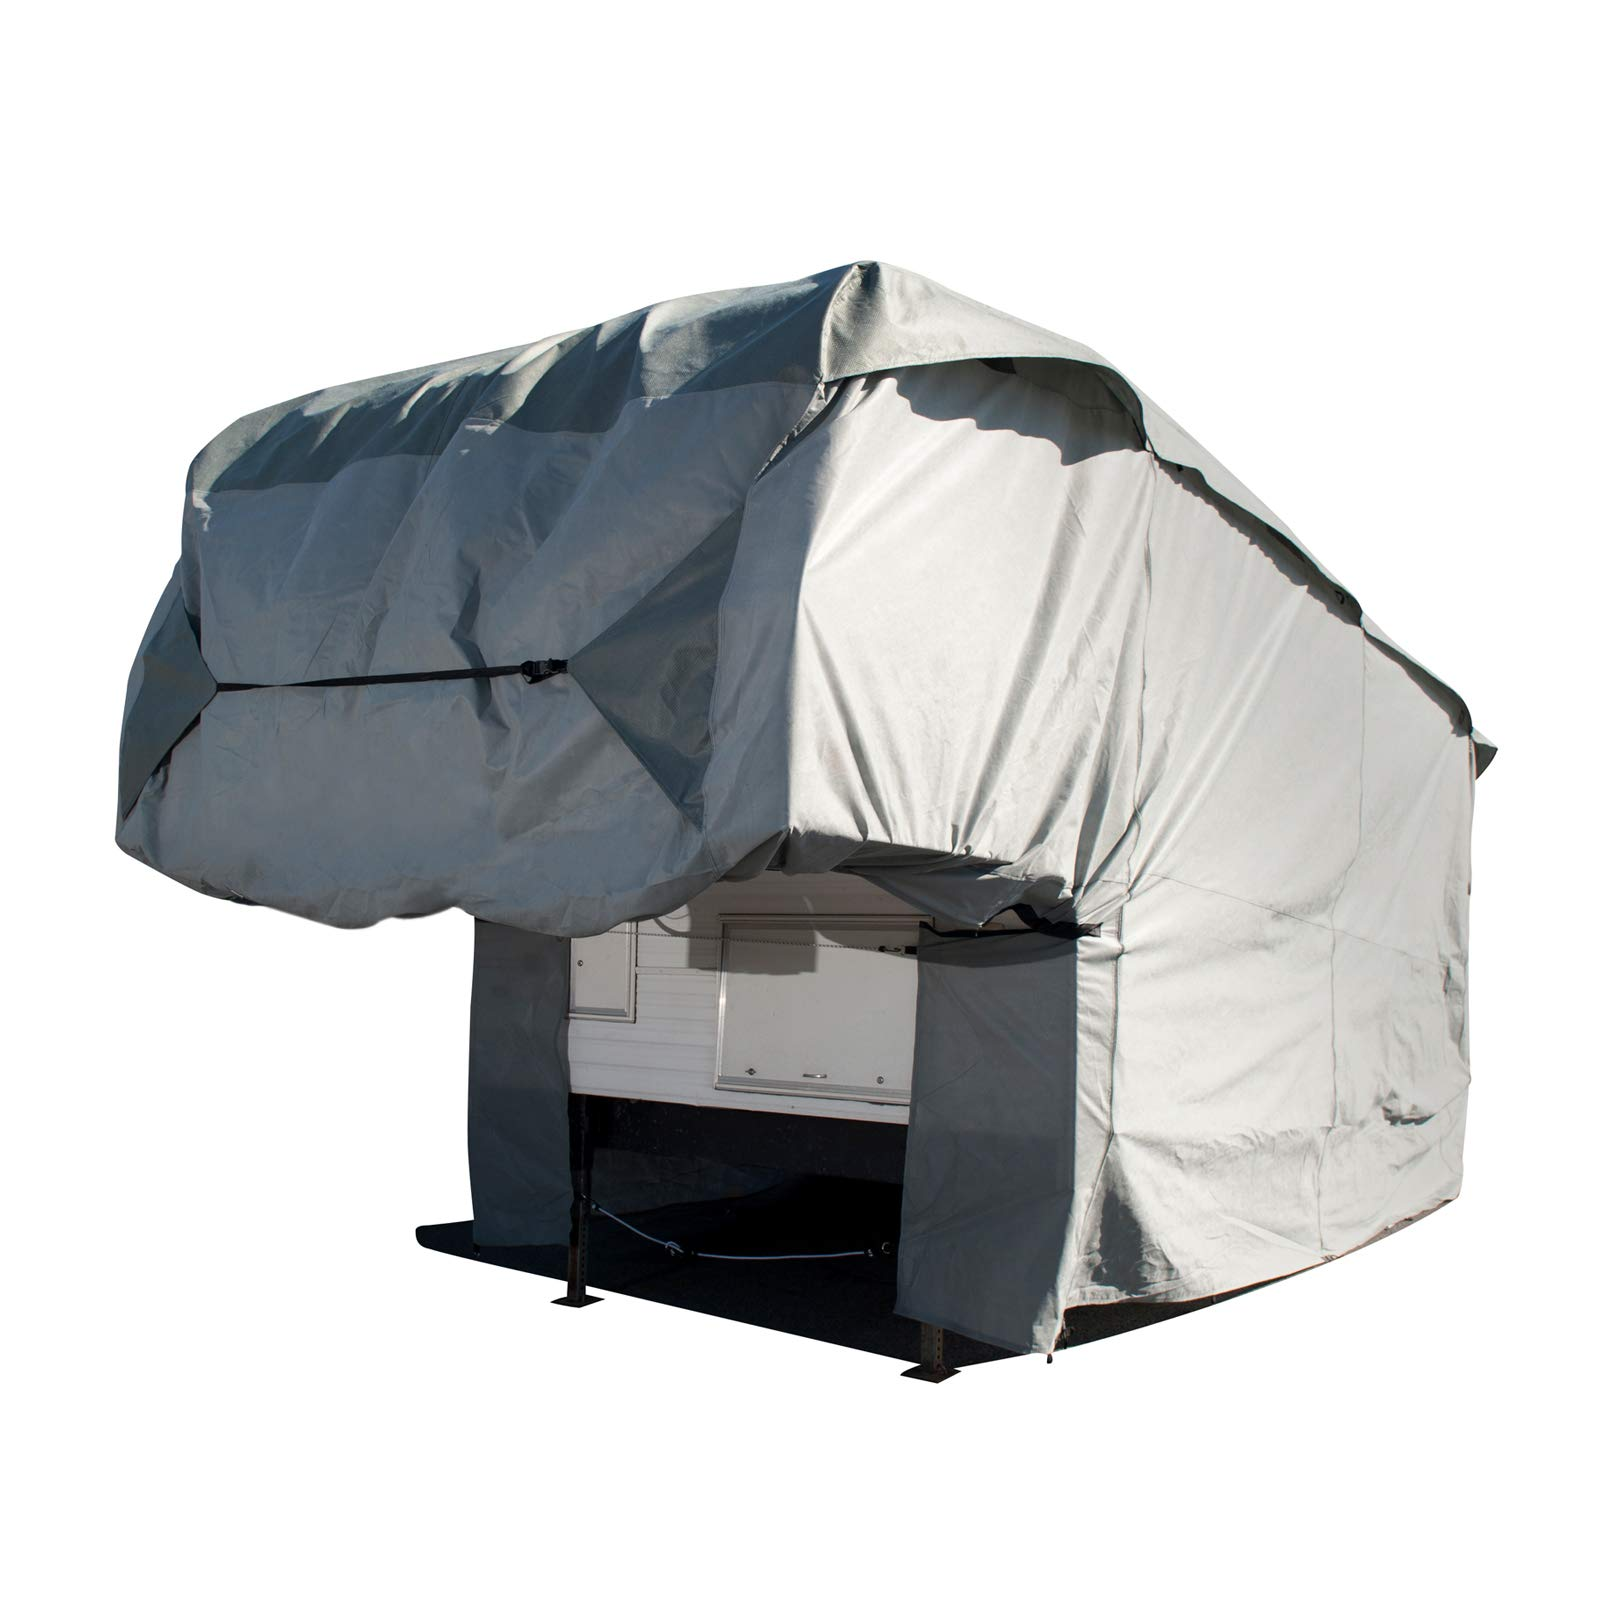 Budge Truck Camper Covers Fits Truck Camper RVs 8' to 9' Long (Gray, Polyproplyene) by Budge